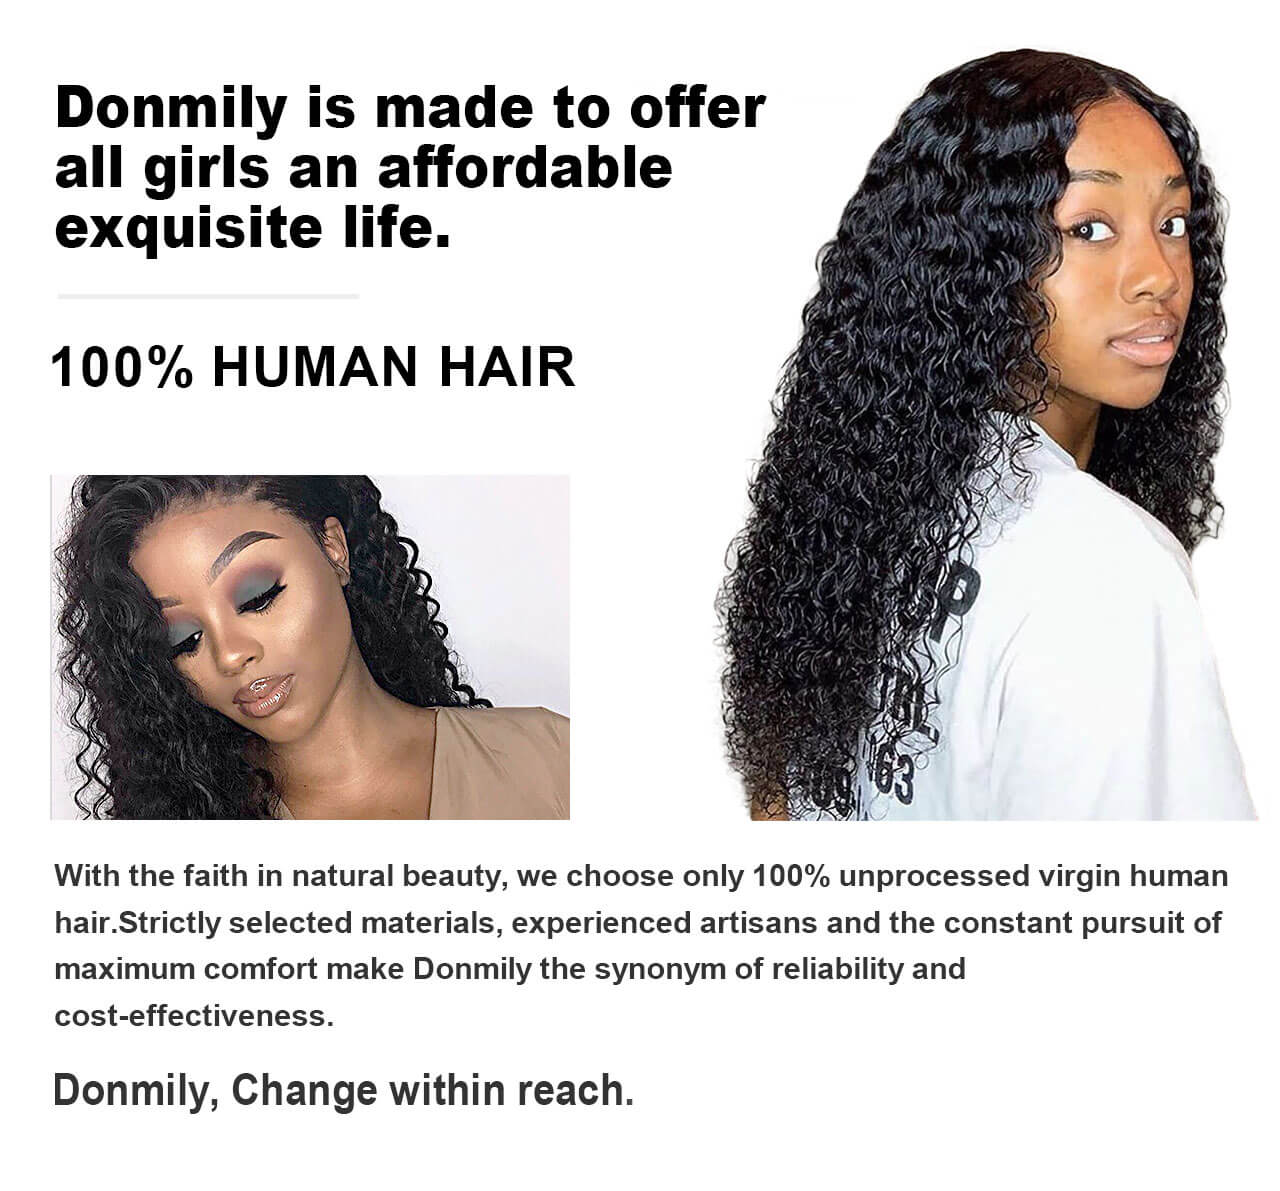 donmily 100% human hair